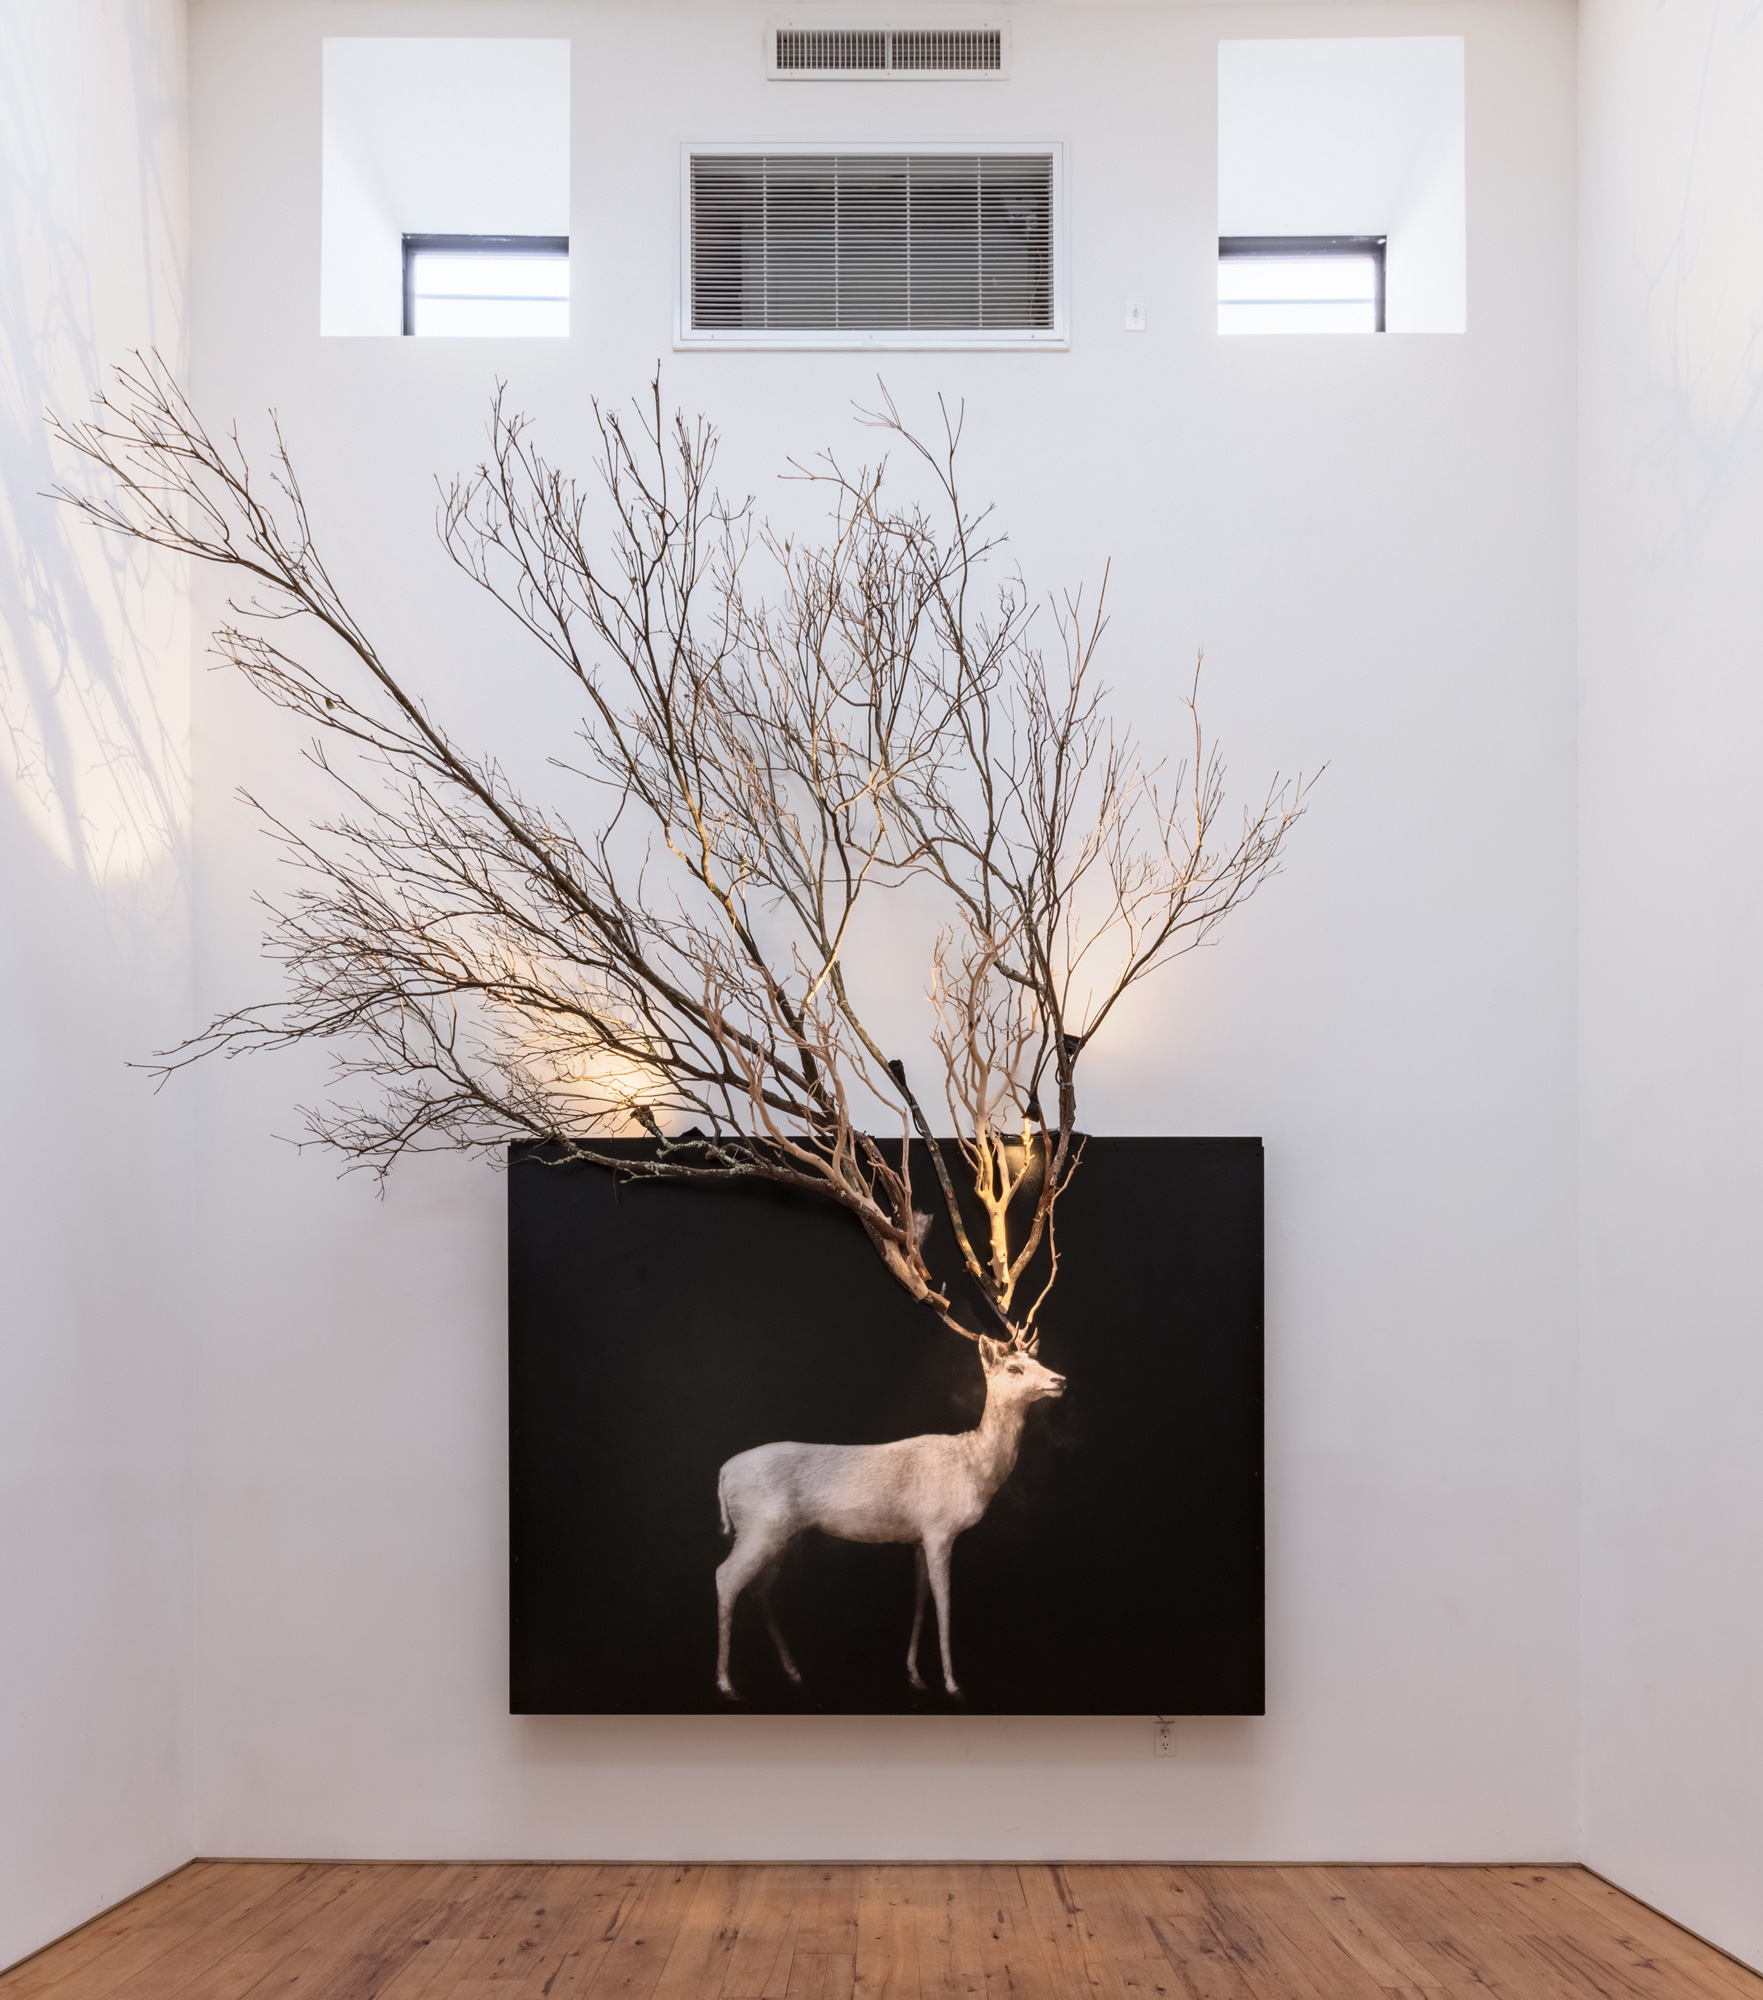 Todd Murphy 2016 Mixed media (Oil on plexiglas with archival digital print and branches) 74 x 96 inches Branches variable dimensions 2016 Marc Straus Gallery